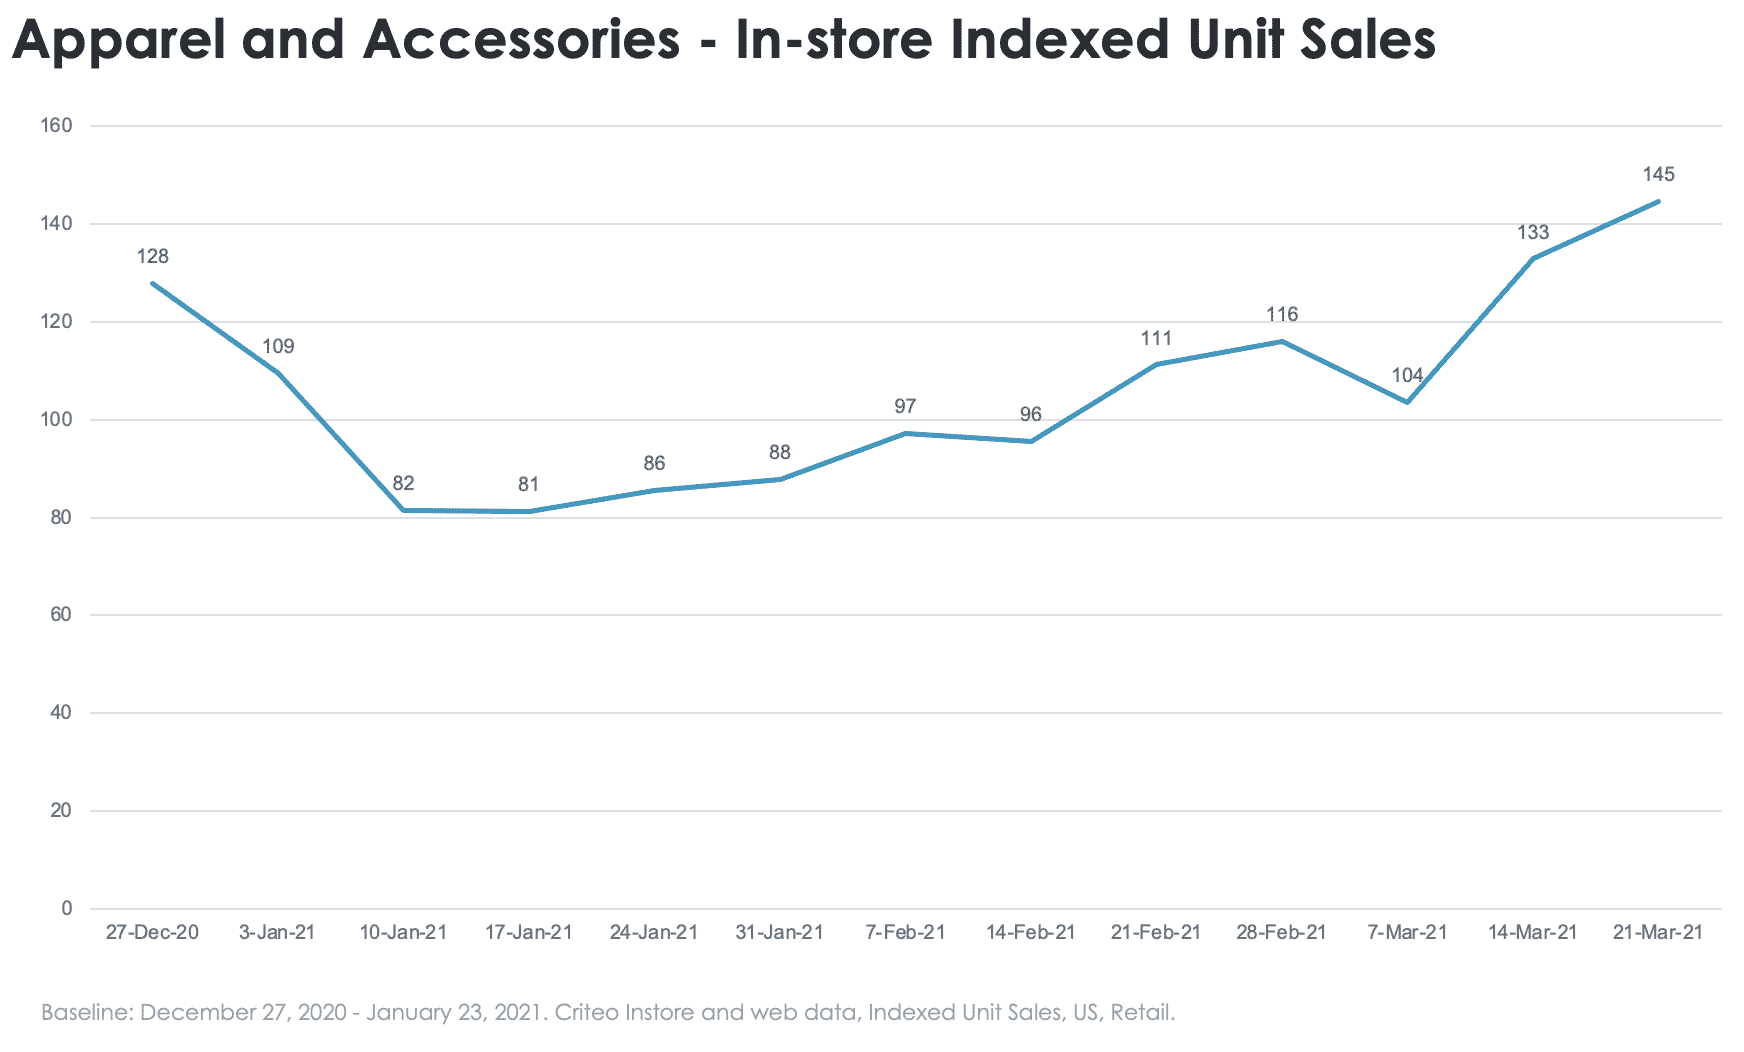 Apparel and accessories in-store sales